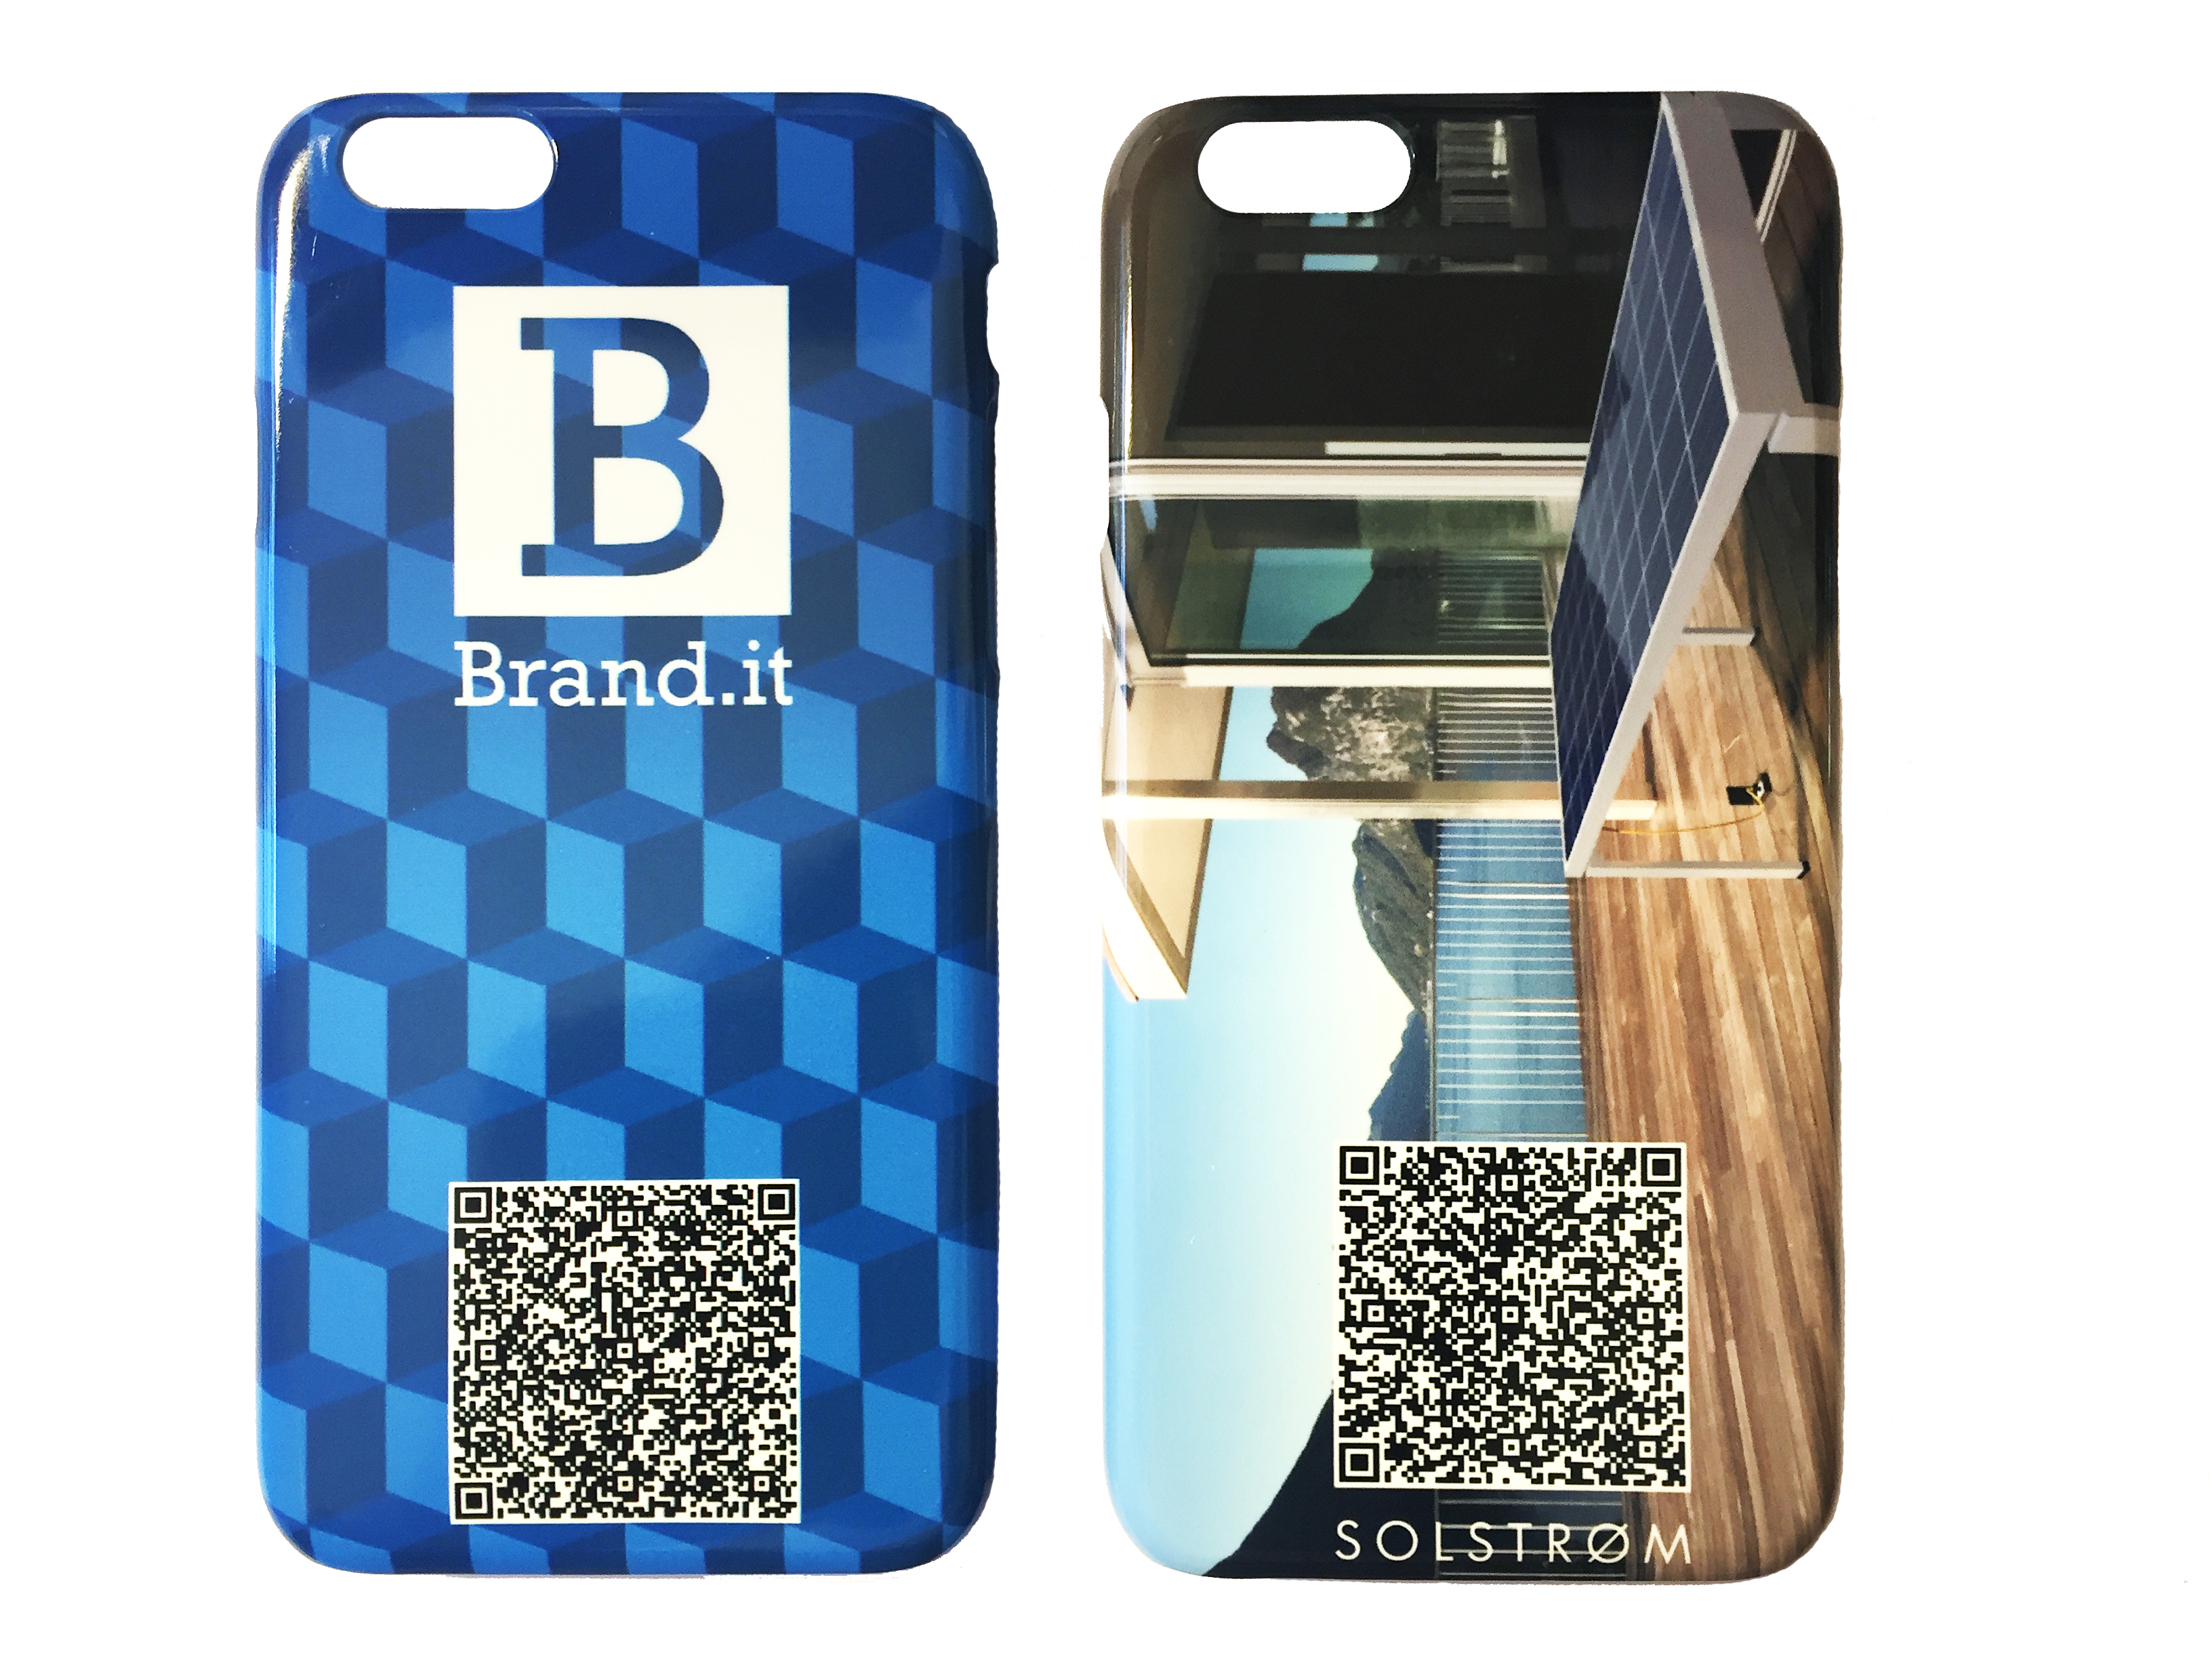 smartphone-iphone-galaxy-case-as-business-card-visitenkarte-overview